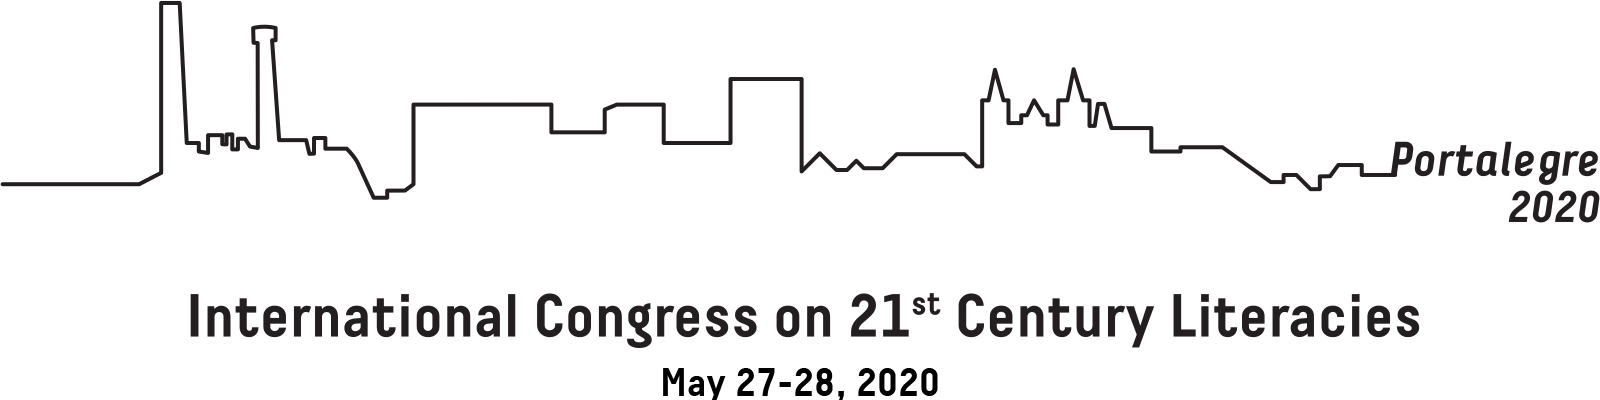 International Congress on 21st Century Literacies